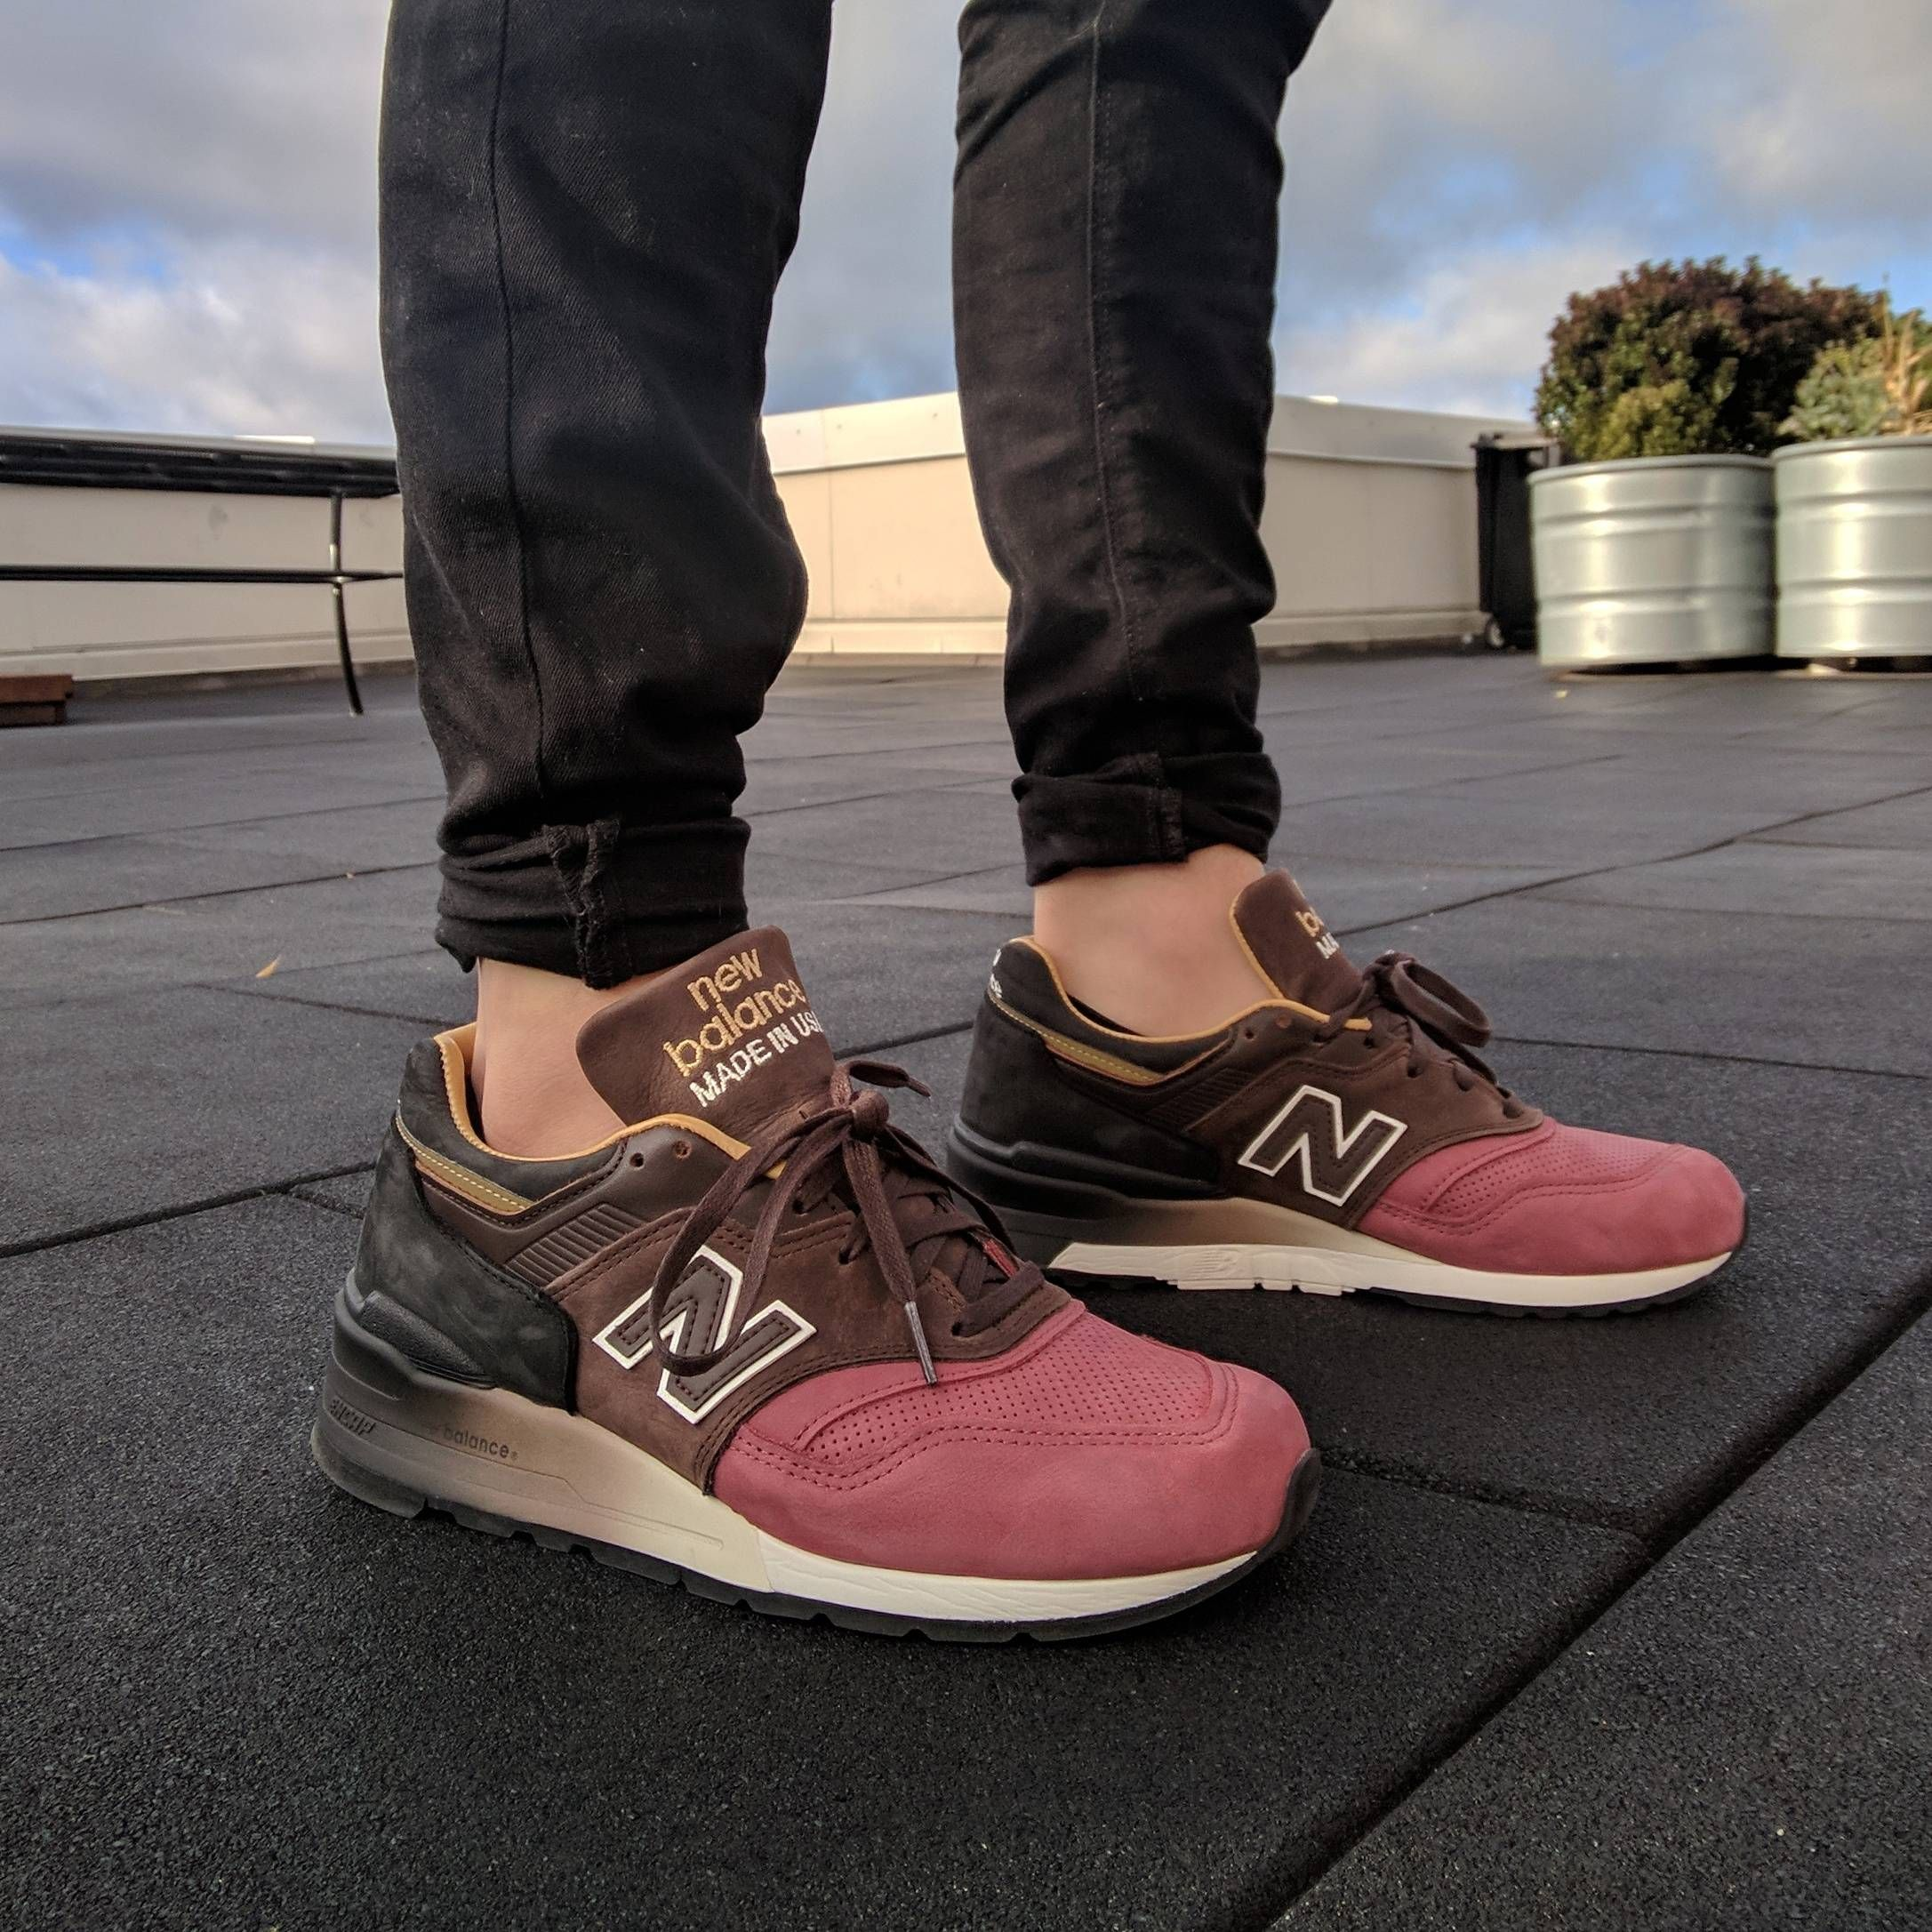 new balance 997 rose retail